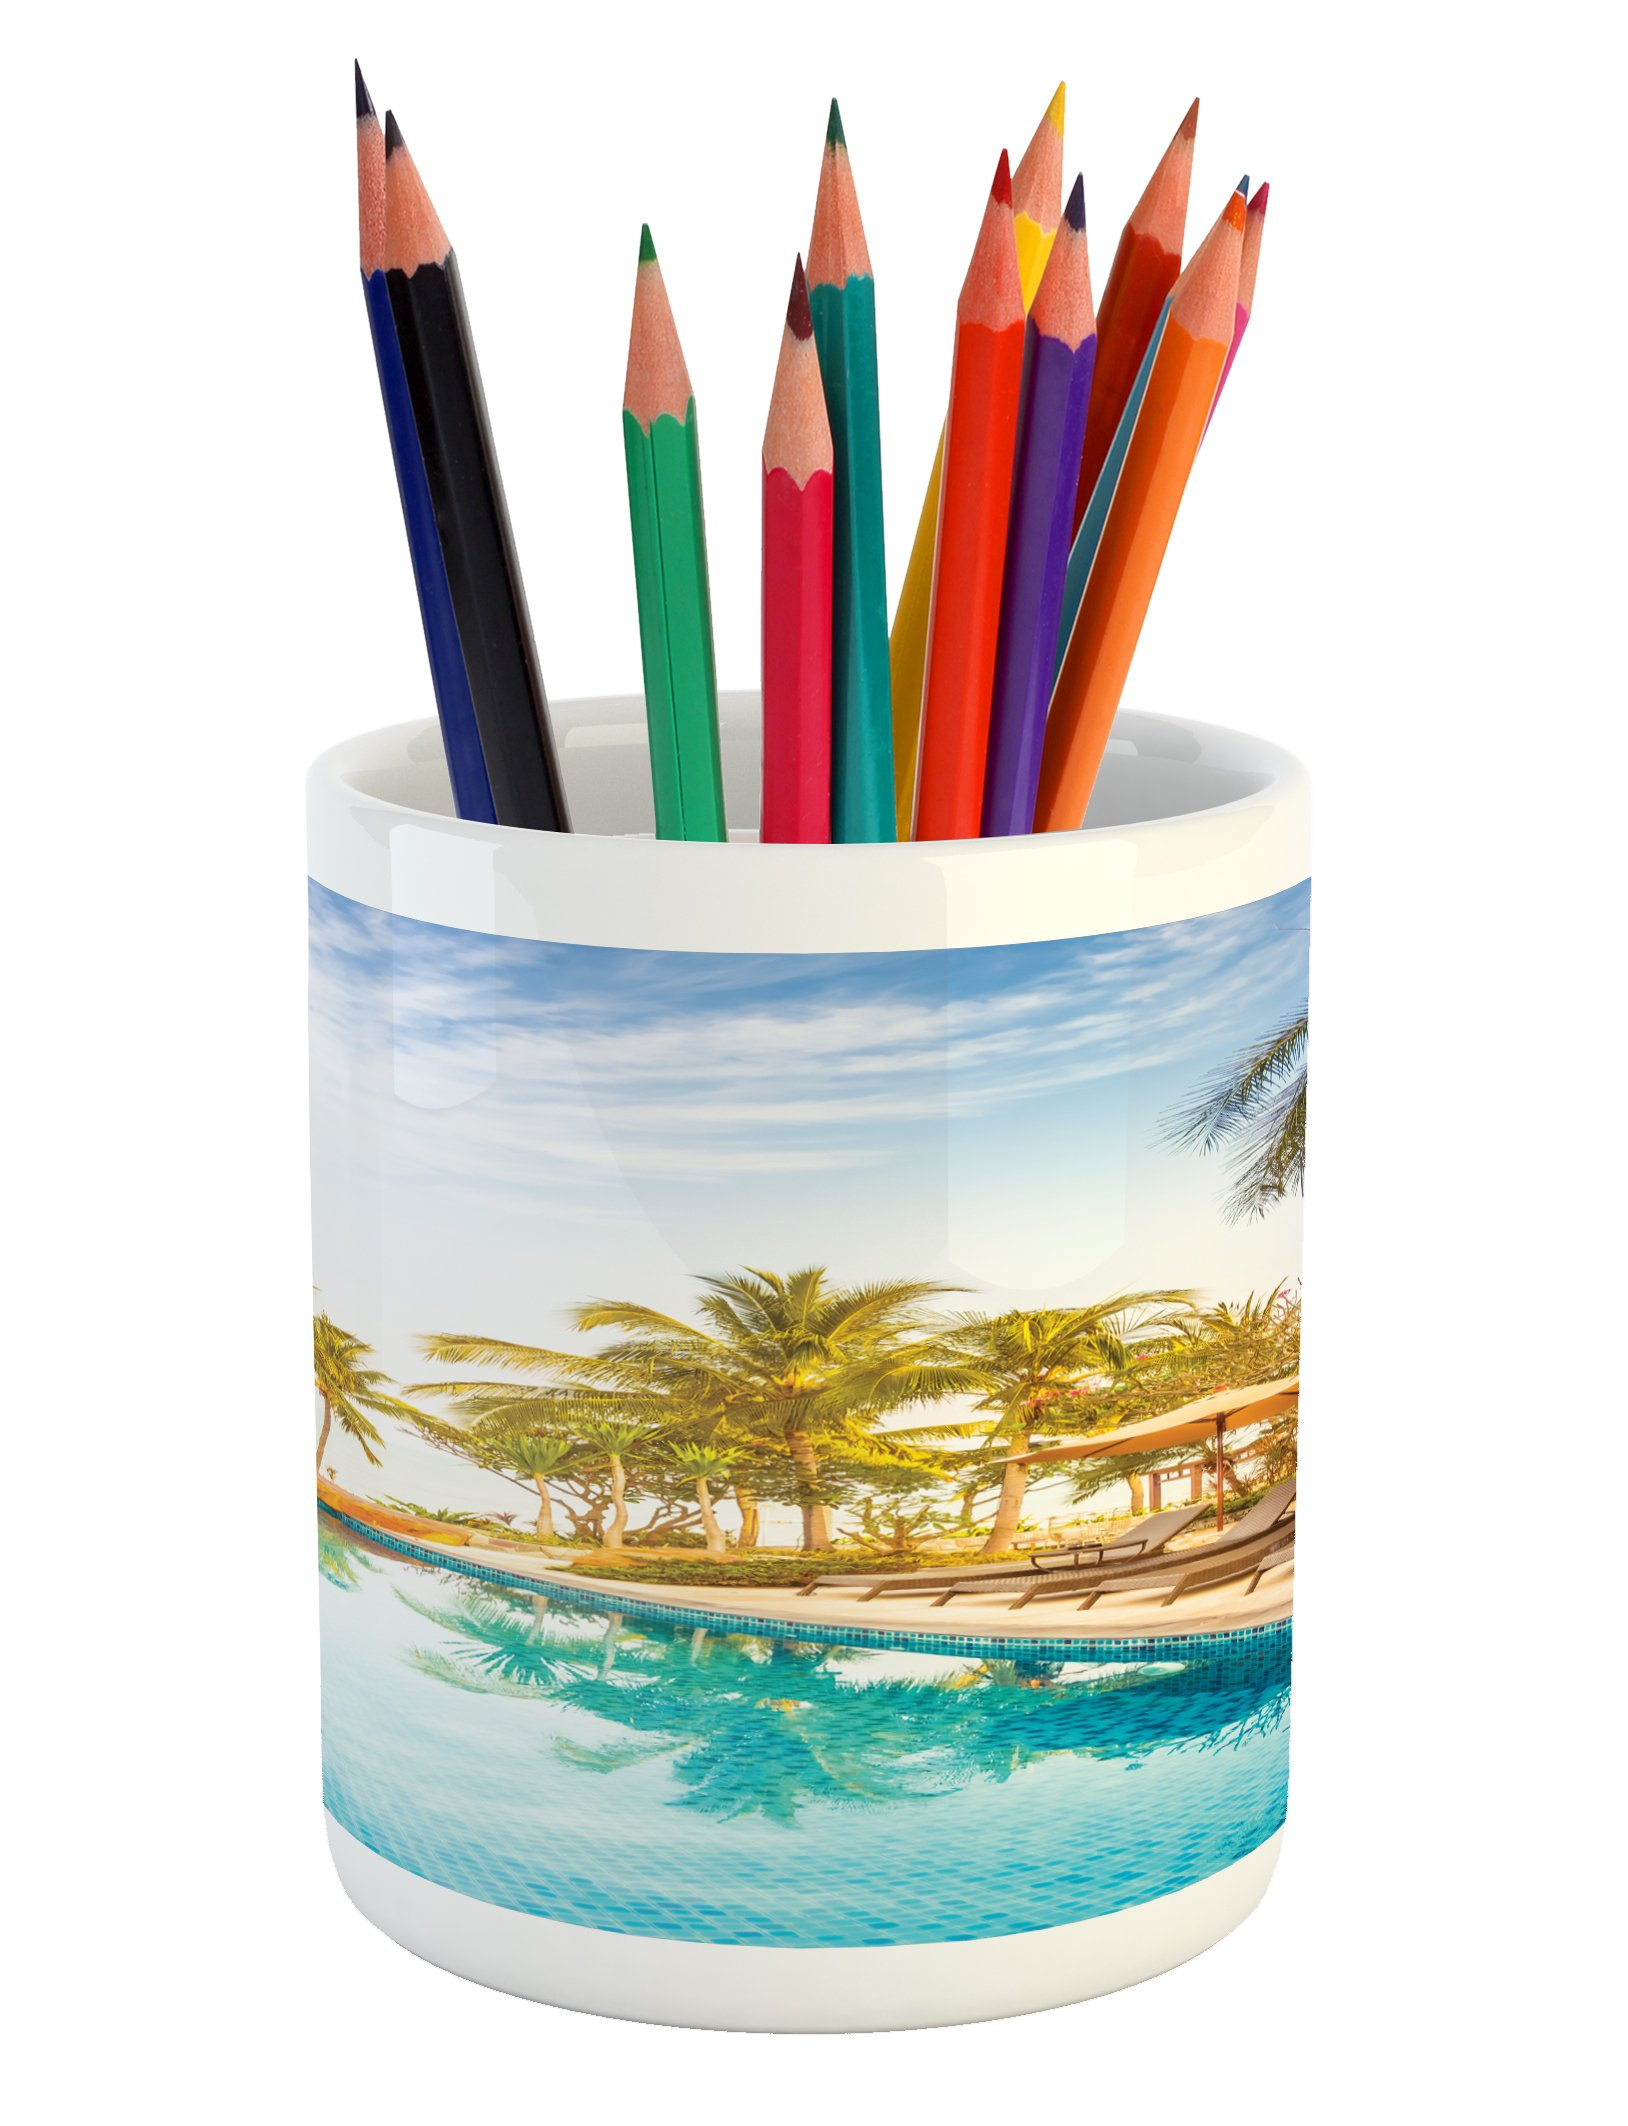 Ambesonne Landscape Pencil Pen Holder, Aerial View of A Pool in A Health Resort Spa Hotel with Exotic Sports Modern Photo, Printed Ceramic Pencil Pen Holder for Desk Office Accessory, Multi